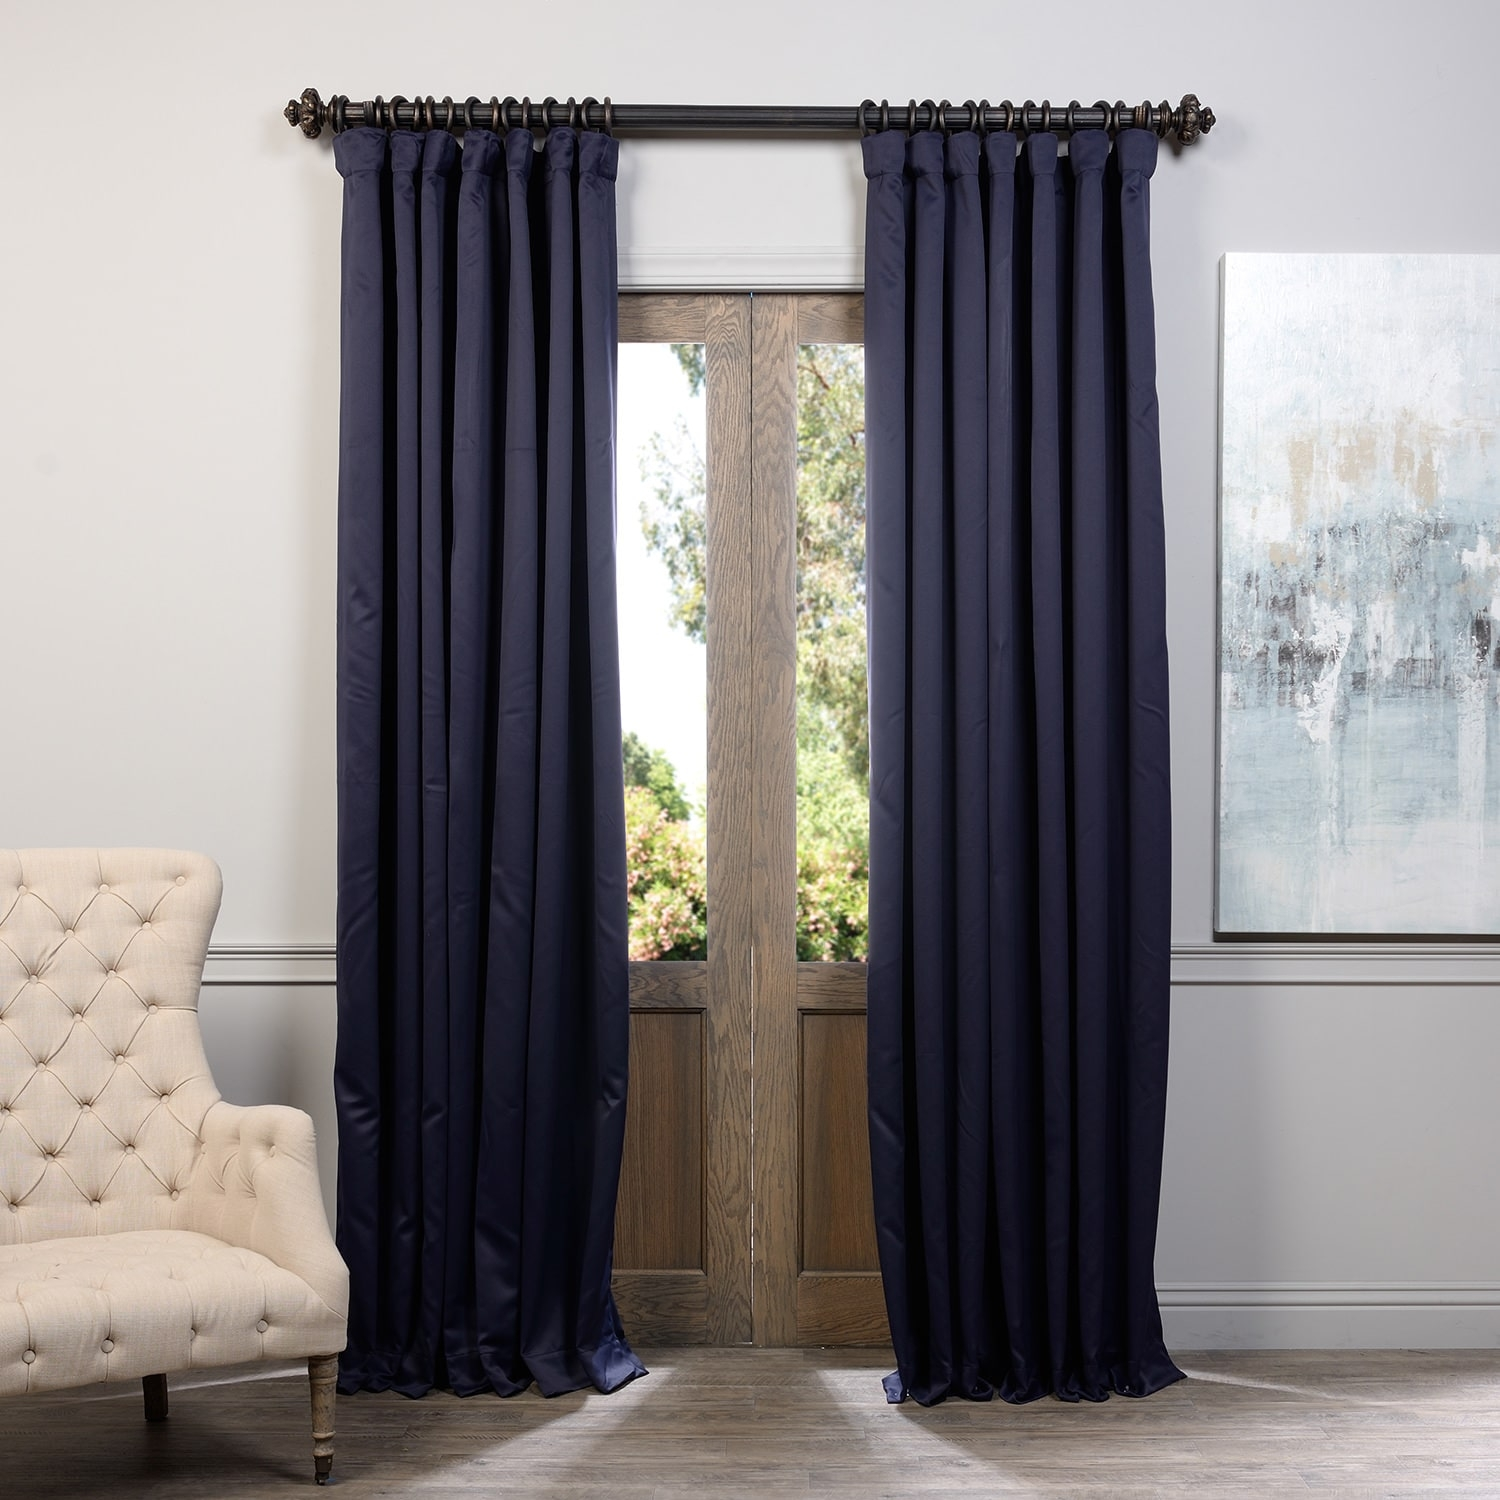 Extraordinary Ideas Blackout Curtains 108 Inches Blackout Curtains With Regard To Extra Wide And Long Curtains (Image 9 of 15)